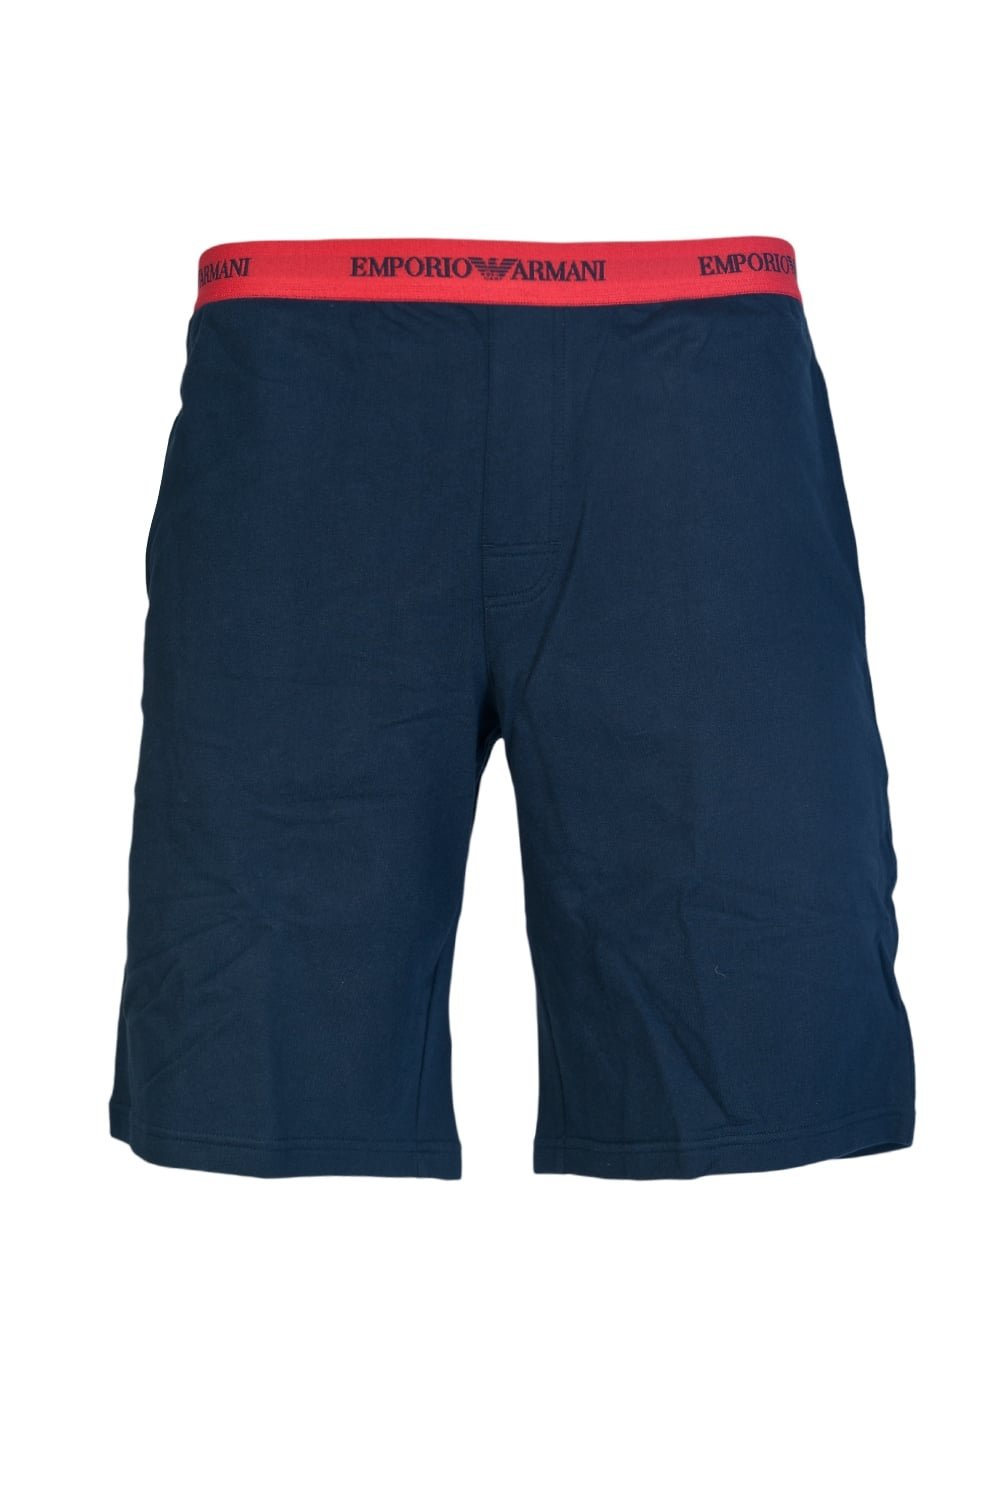 Emporio Armani Men's French Terry Classic Logo Bermuda Short, Marine, Large